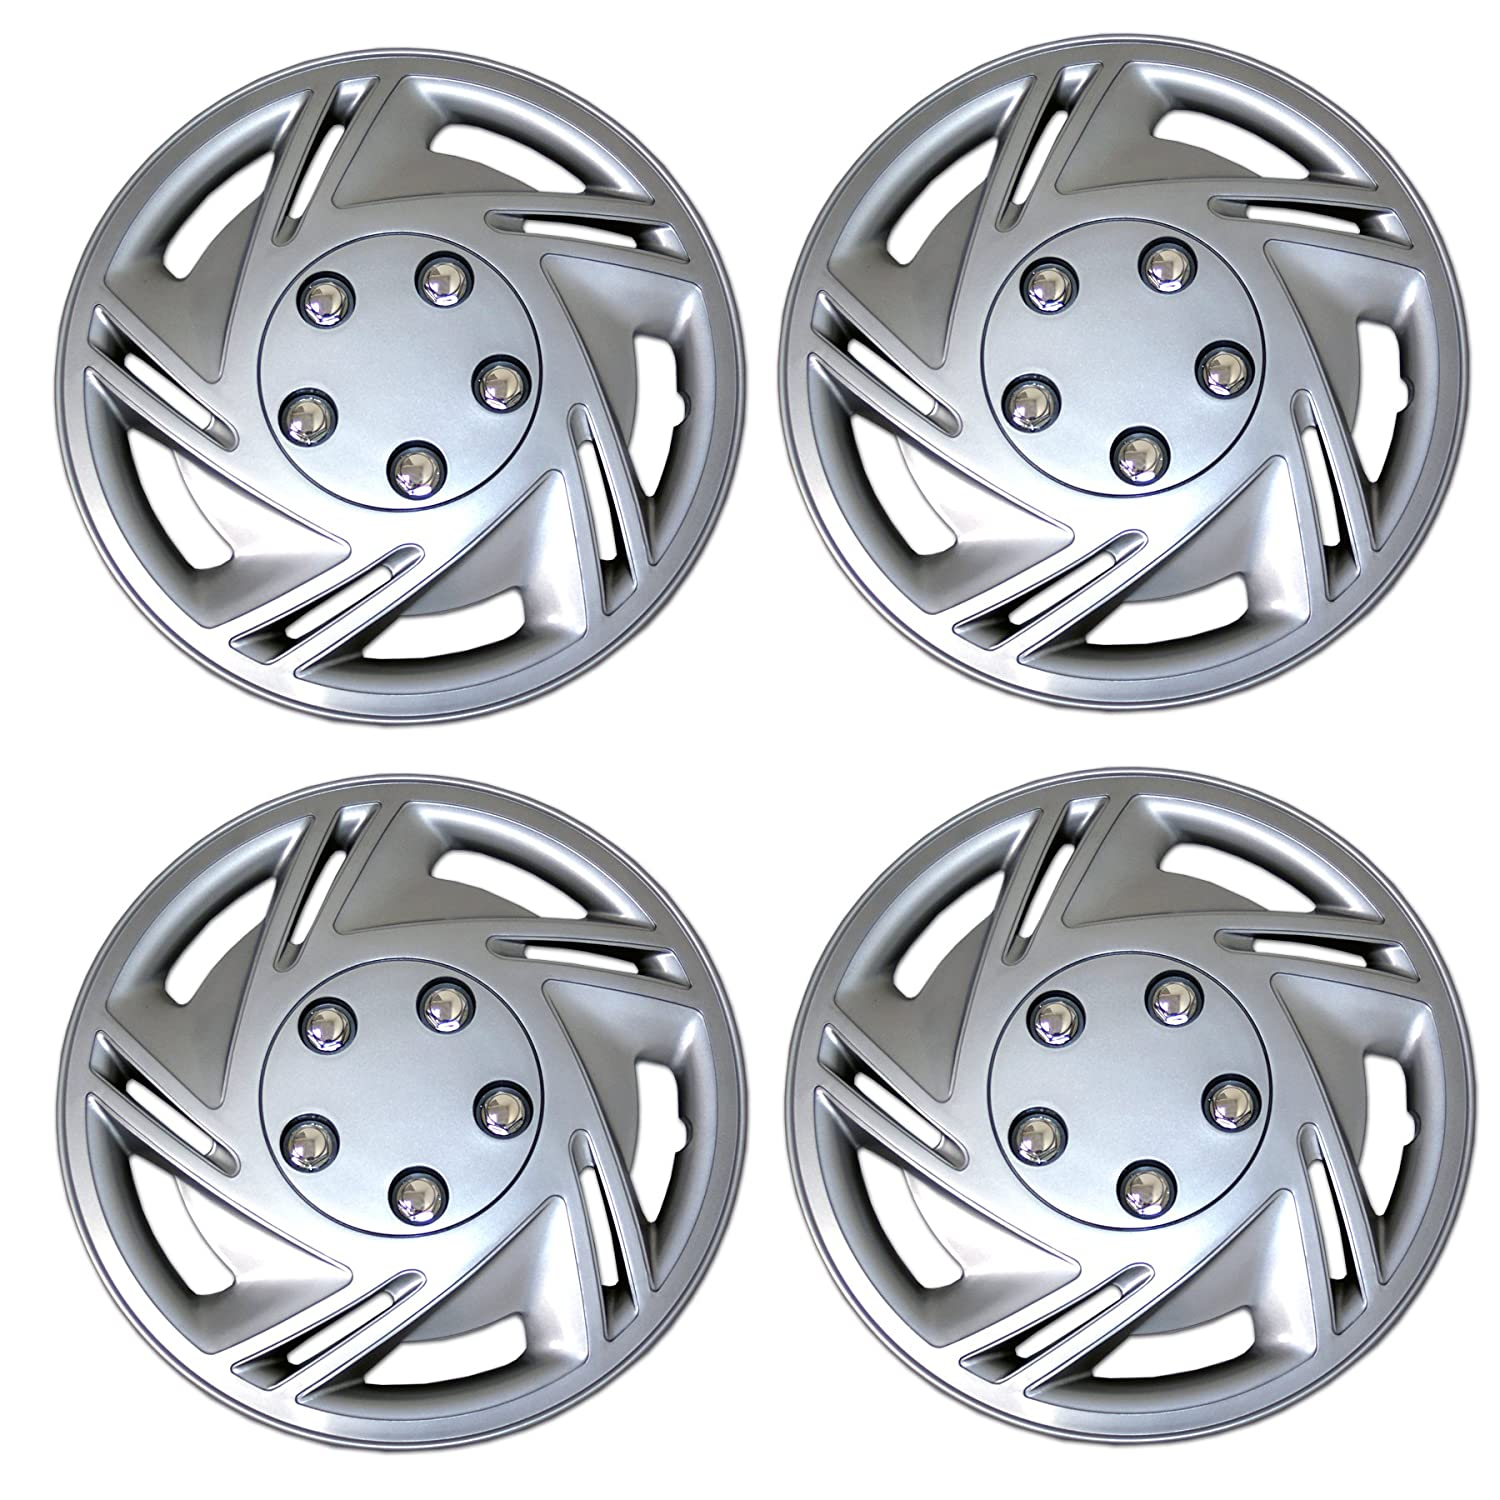 14-Inches Style 9602 Snap-On Pop-On Pack of 4 Hubcaps Type Metallic Silver Wheel Covers Hub-caps Tuningpros WC3-14-9602-S